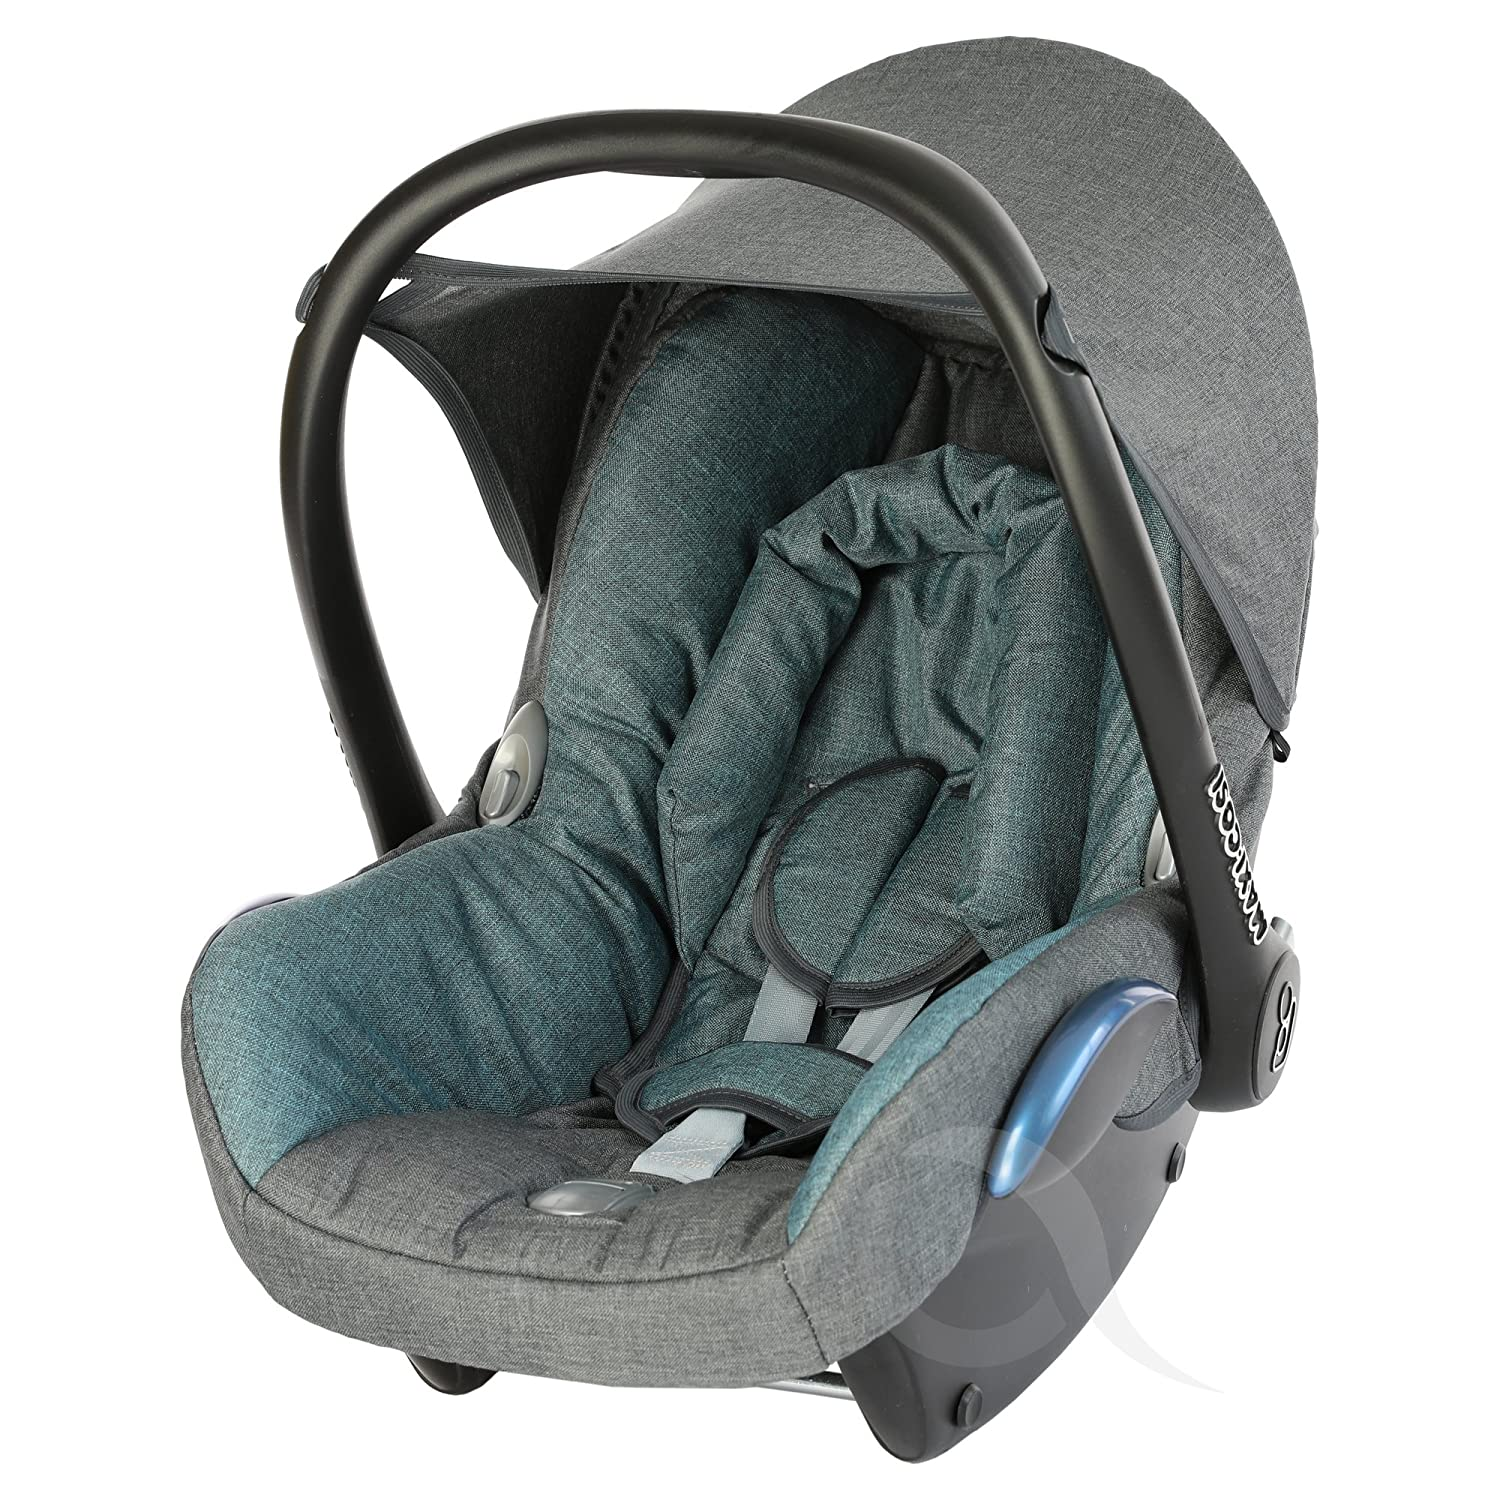 Infant Carrier FULL SET charcoal// grey Replacement Seat Cover fits Maxi-Cosi CabrioFix Group 0